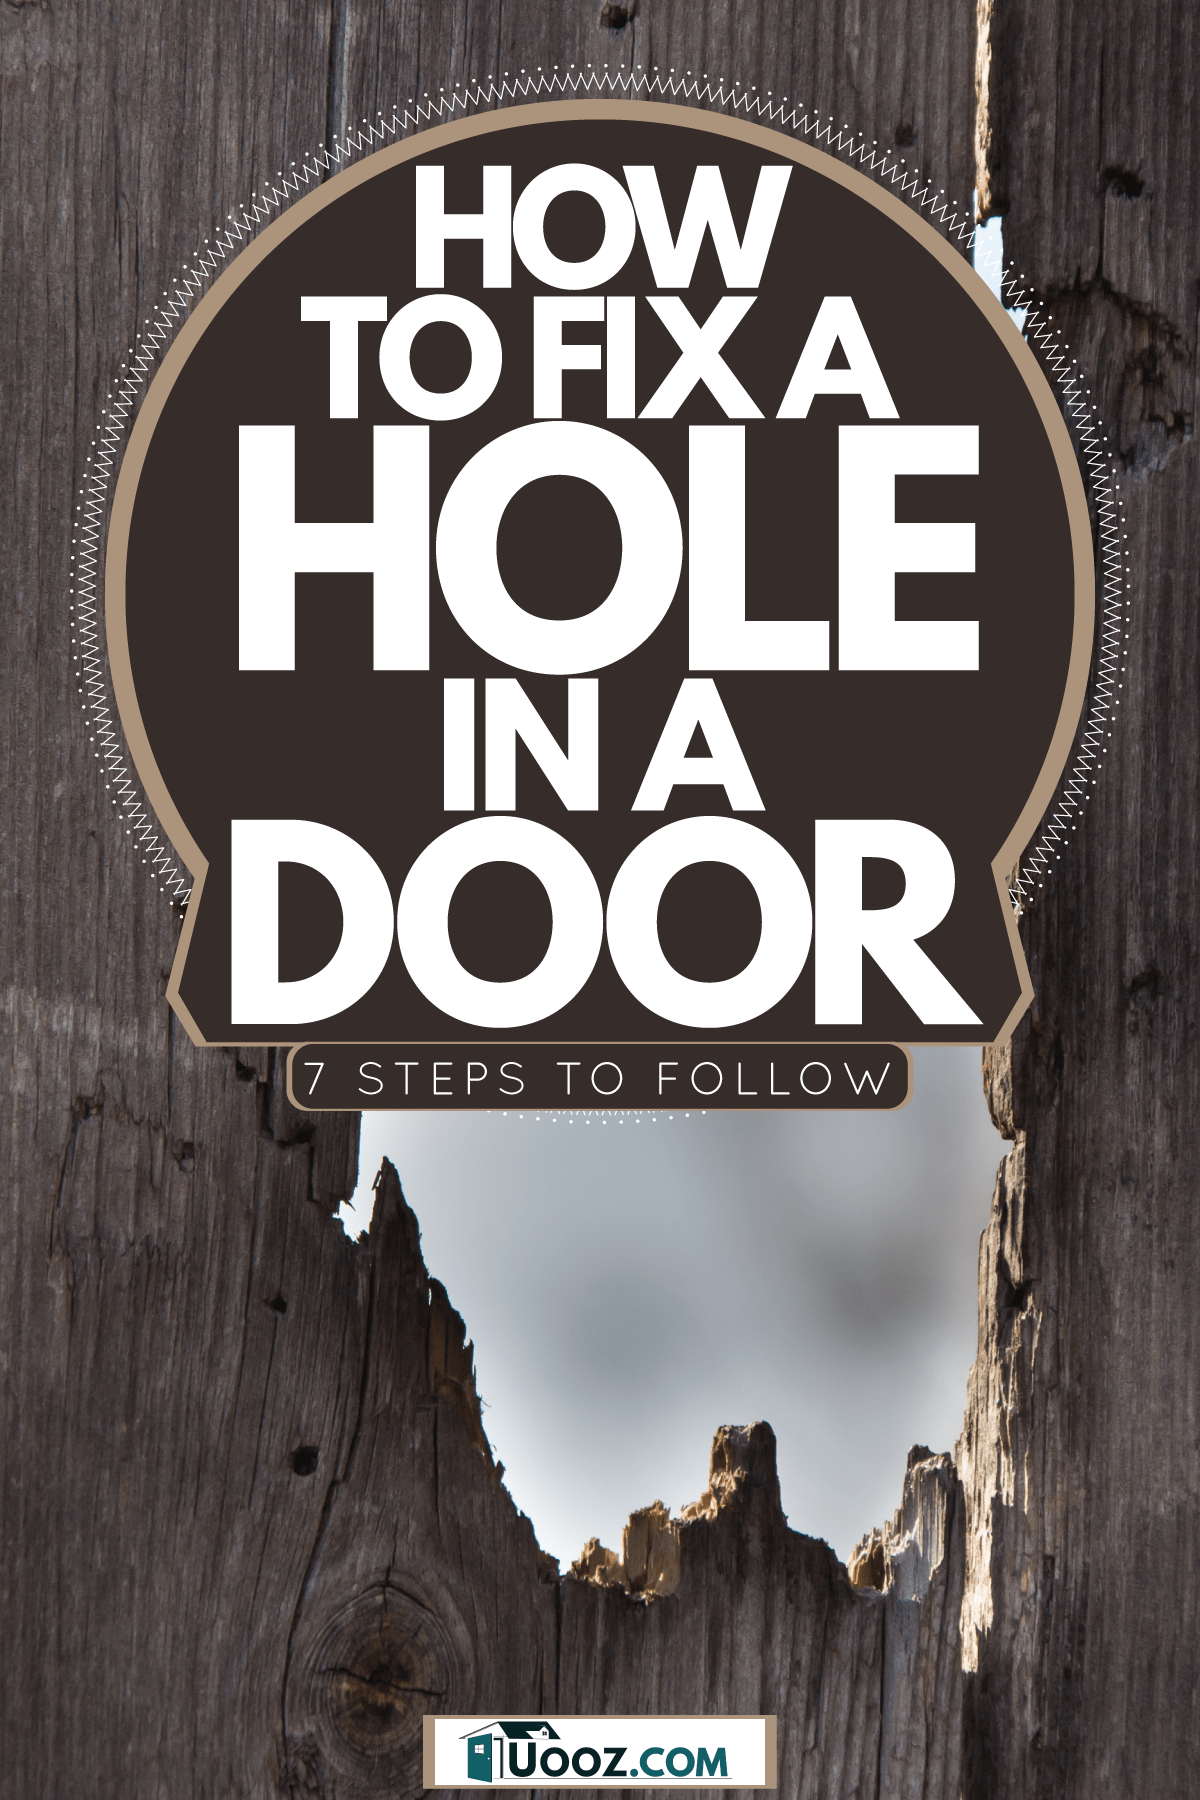 A huge hole in a door fence, How To Fix A Hole In A Door [7 Steps To Follow]